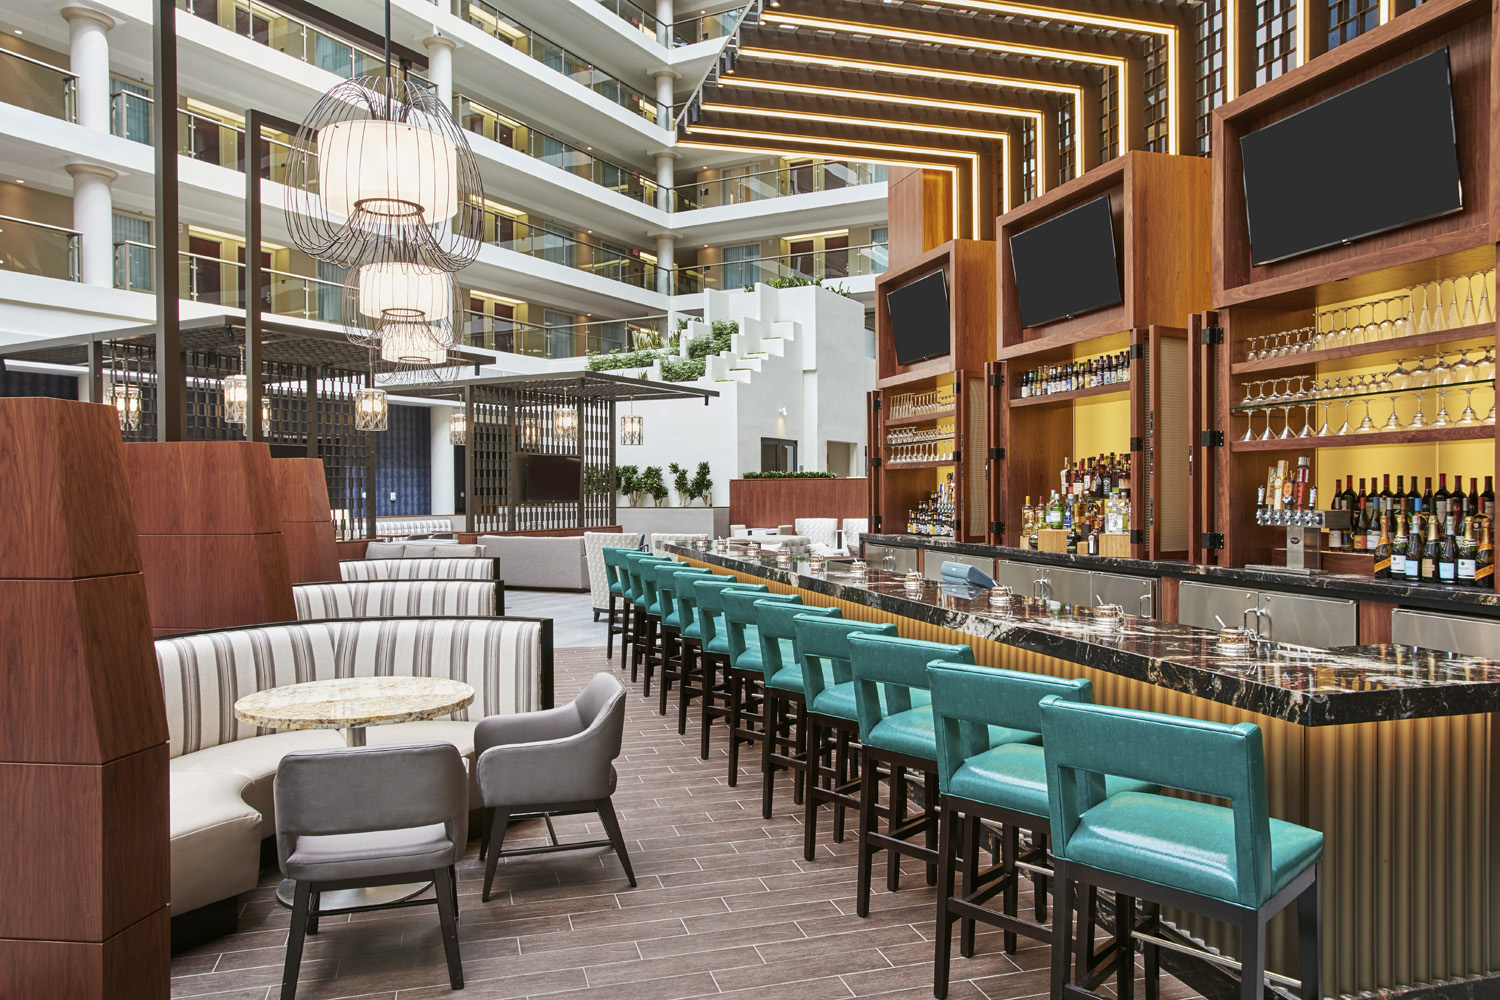 The District Tap restaurant at theEmbassy Suites by Hilton Washington DC Georgetown is the ideal spot for a night cap after a day of exploring the area's bustling food scene.